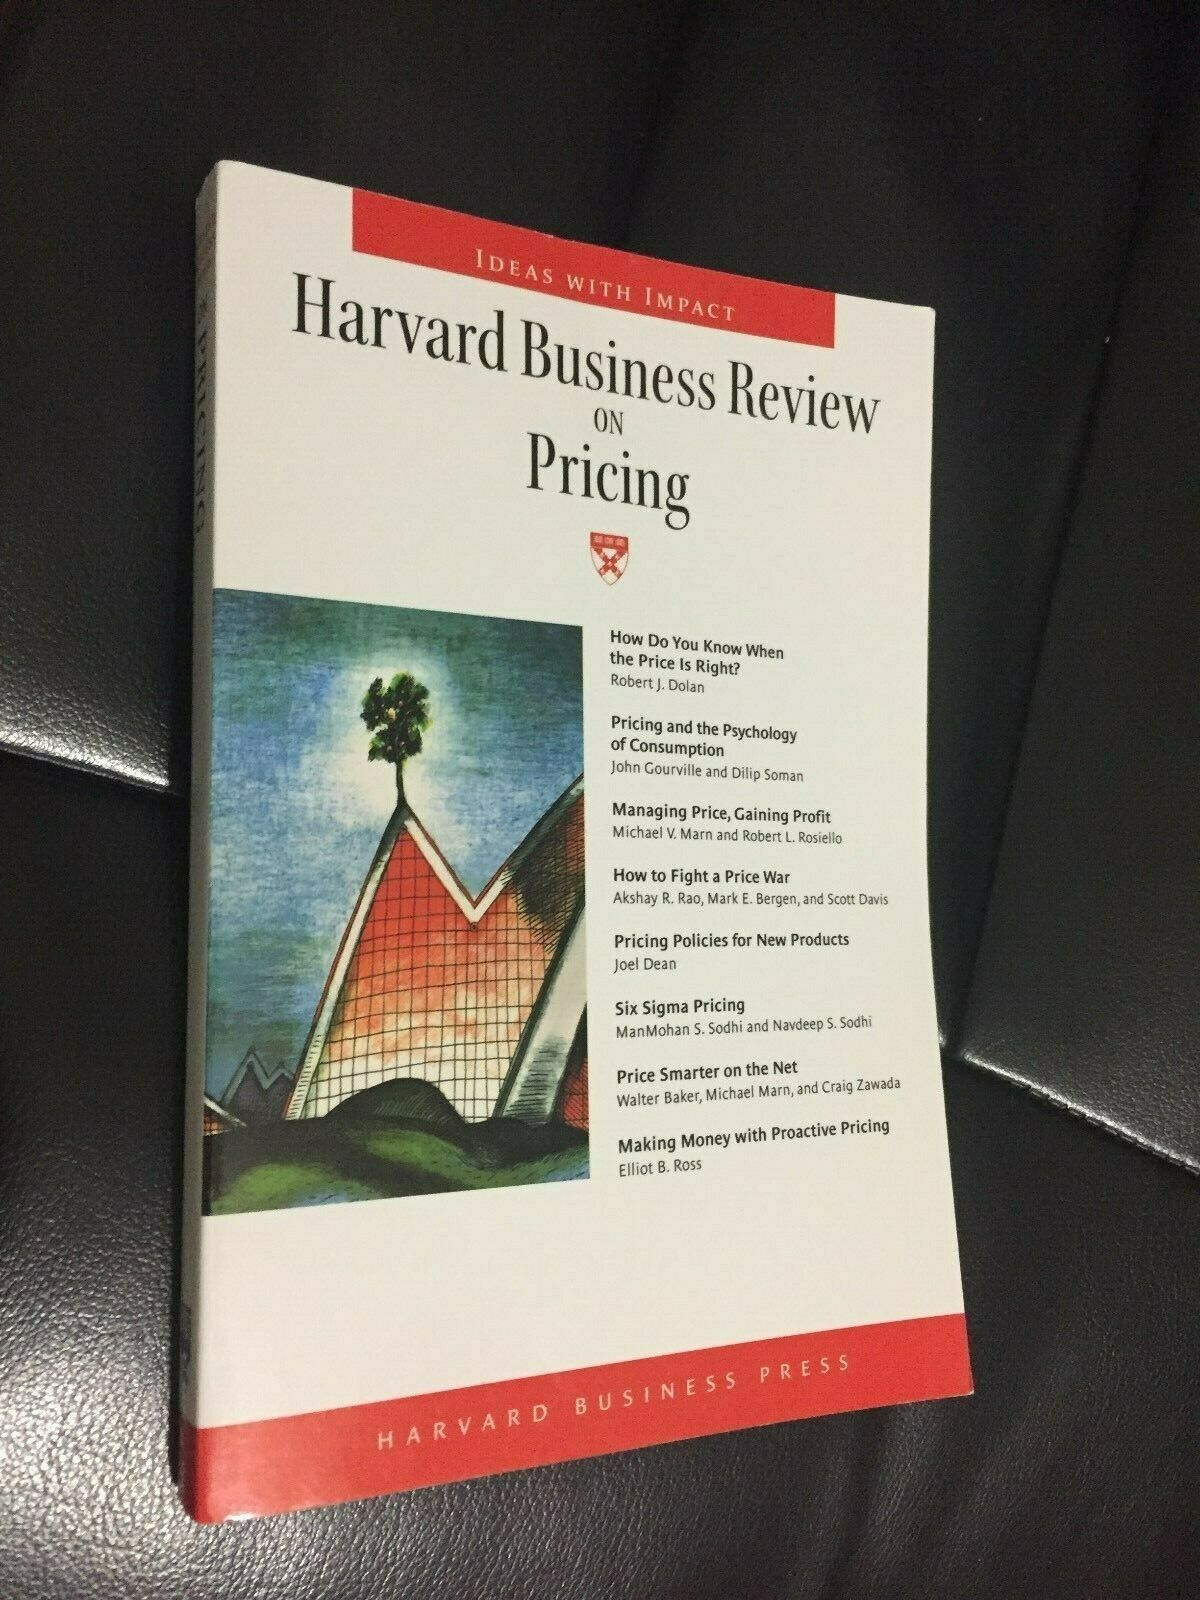 Harvard Business Review on Pricing Press Price Optimization Science Analysis